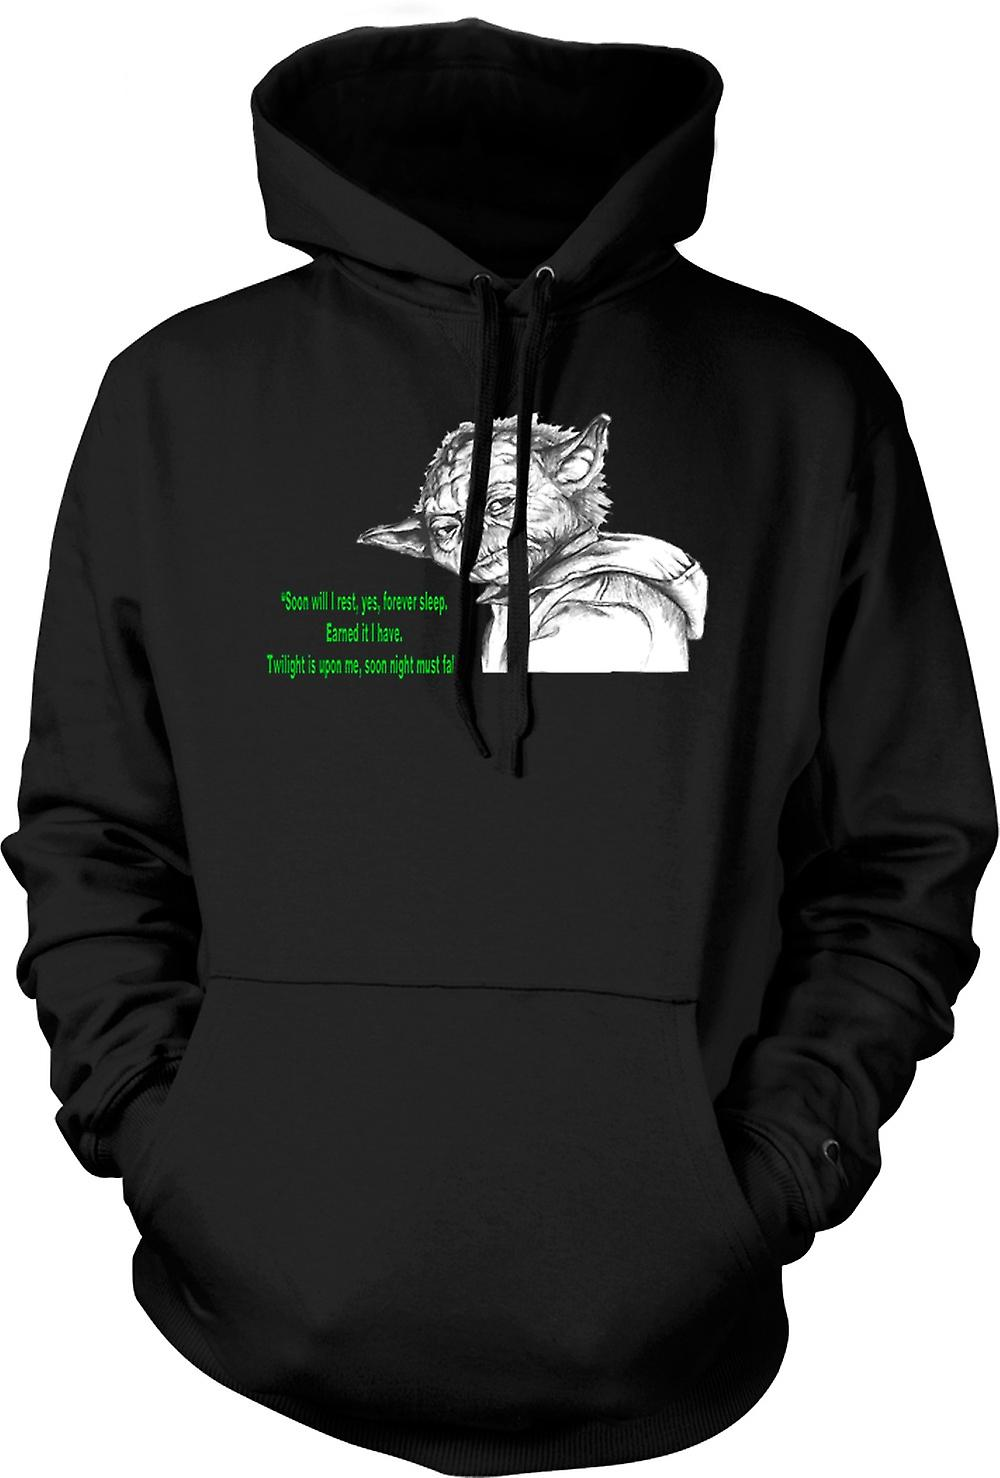 Mens Hoodie - Yoda - Sketch - Soon I Will Rest